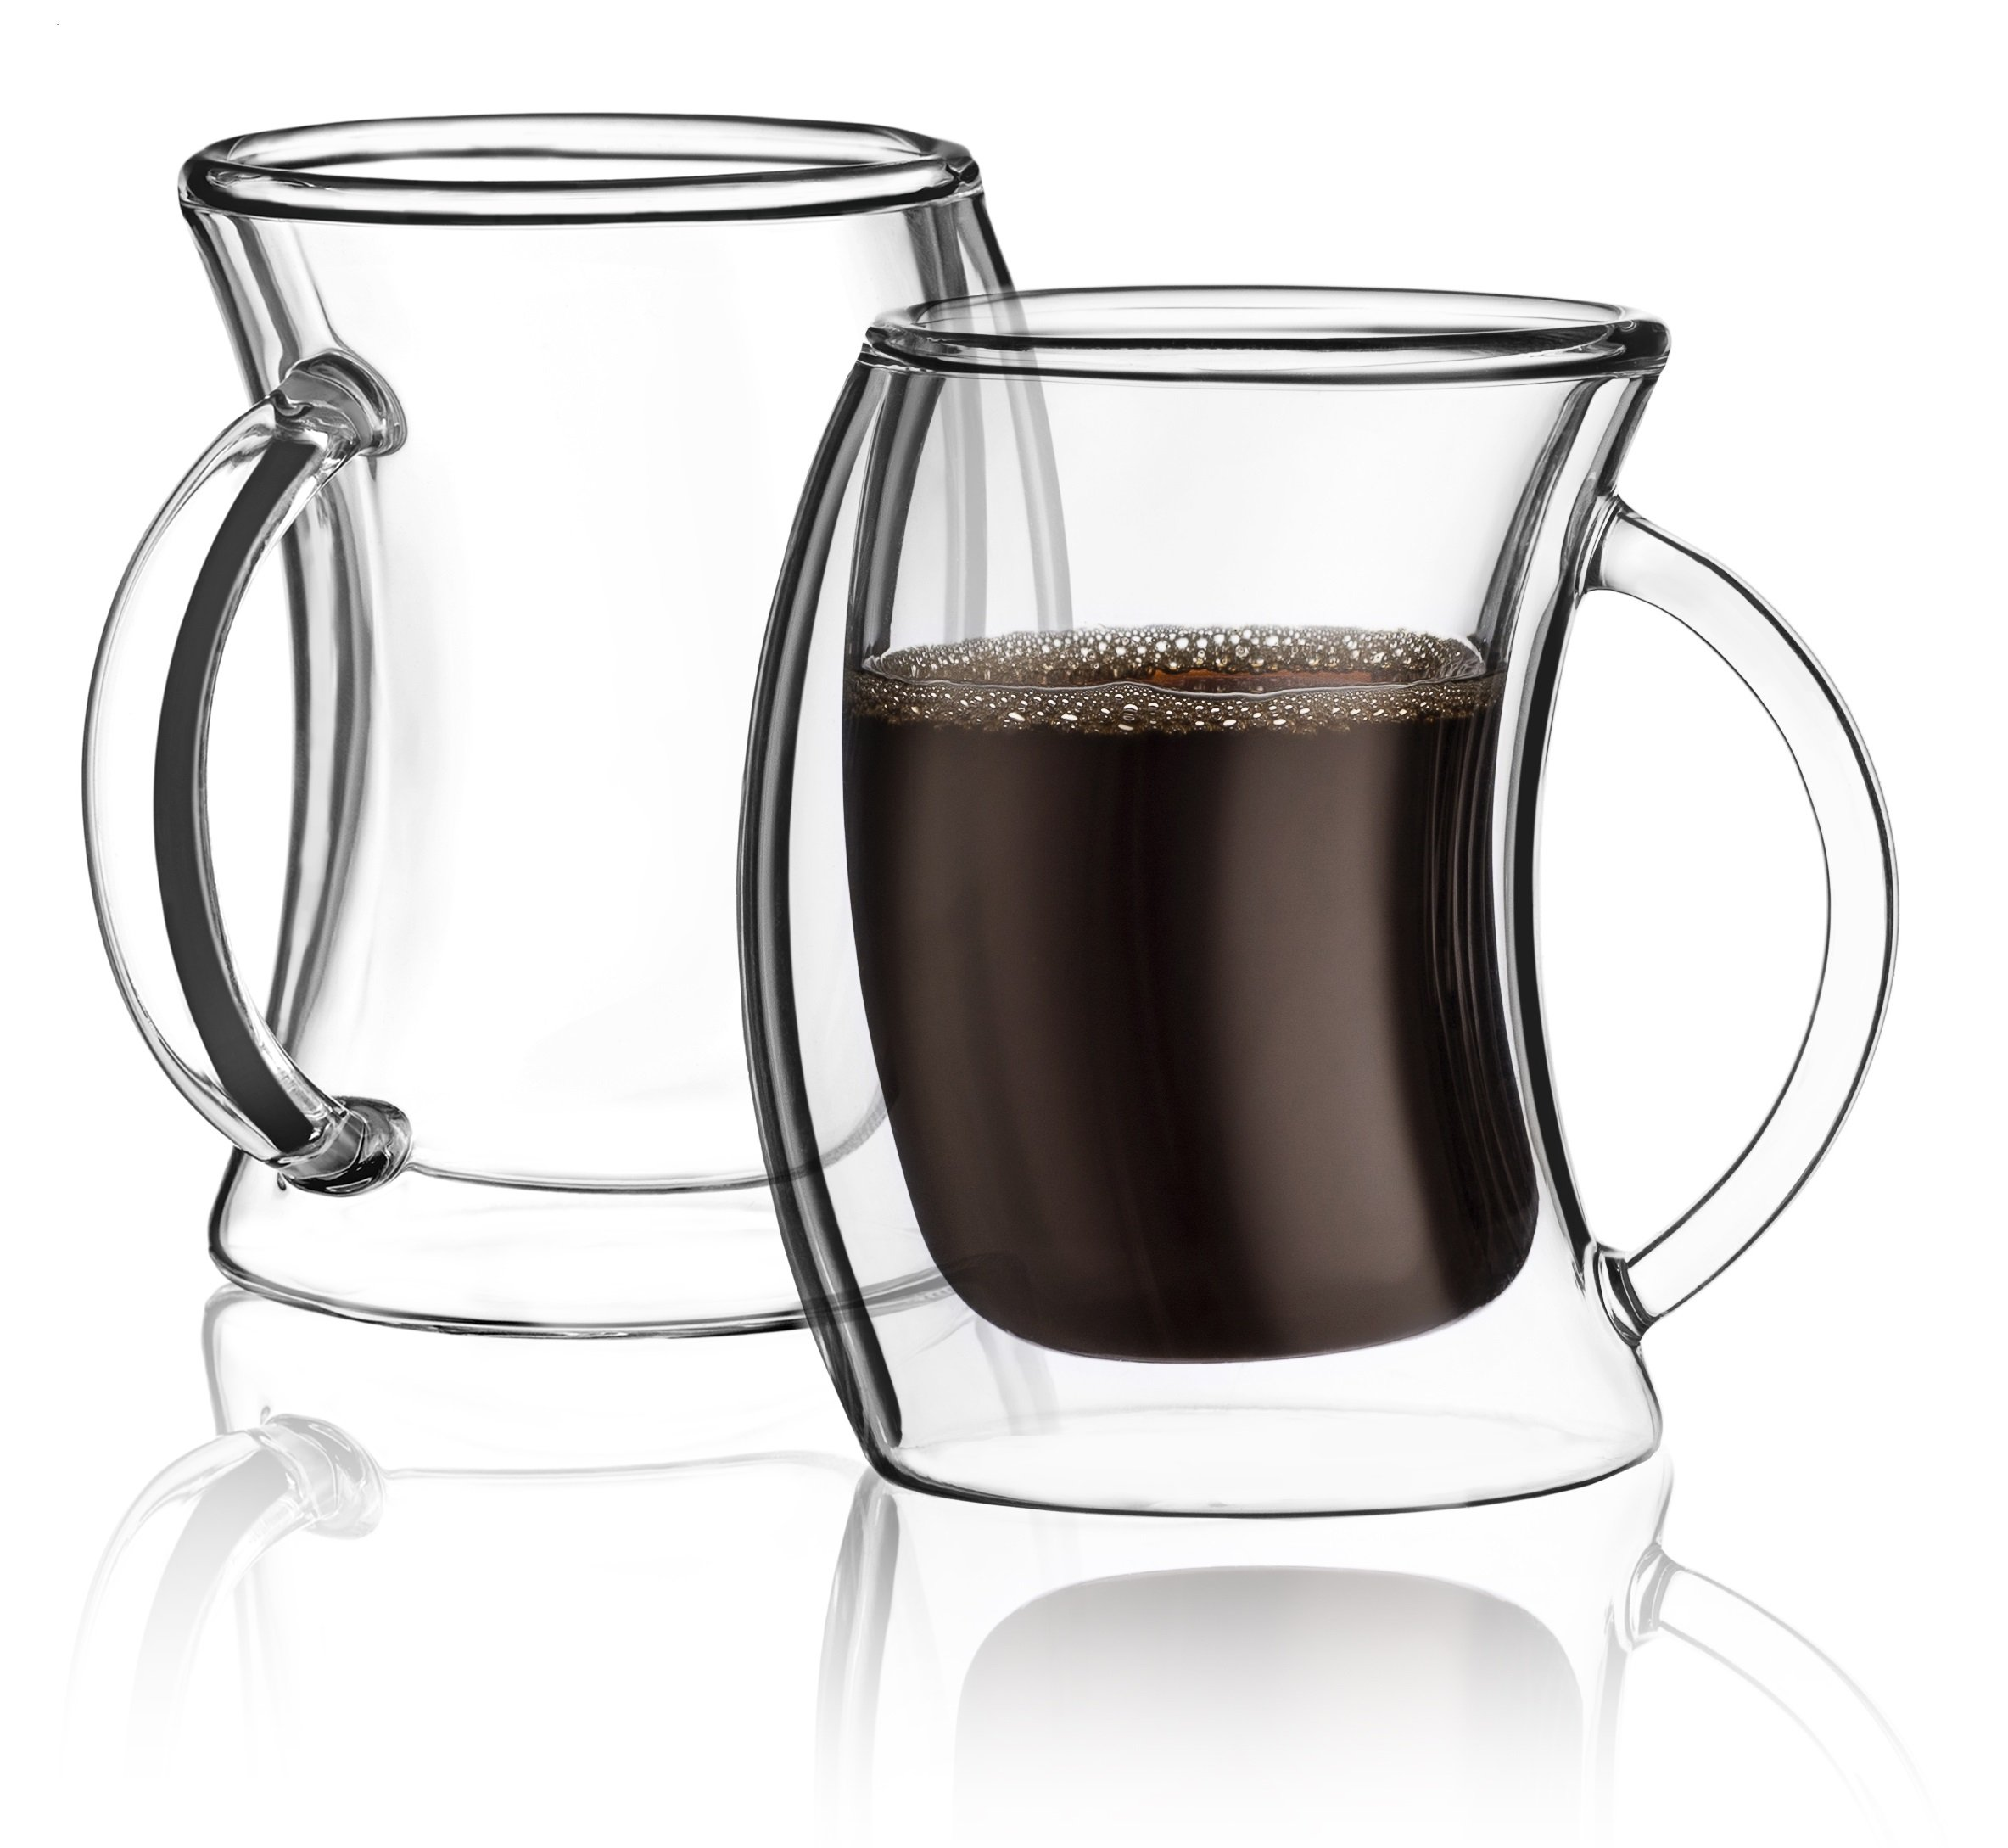 JoyJolt Caleo Double Wall Insulated glasses Espresso Cups Set of 2, 5.4-Ounces